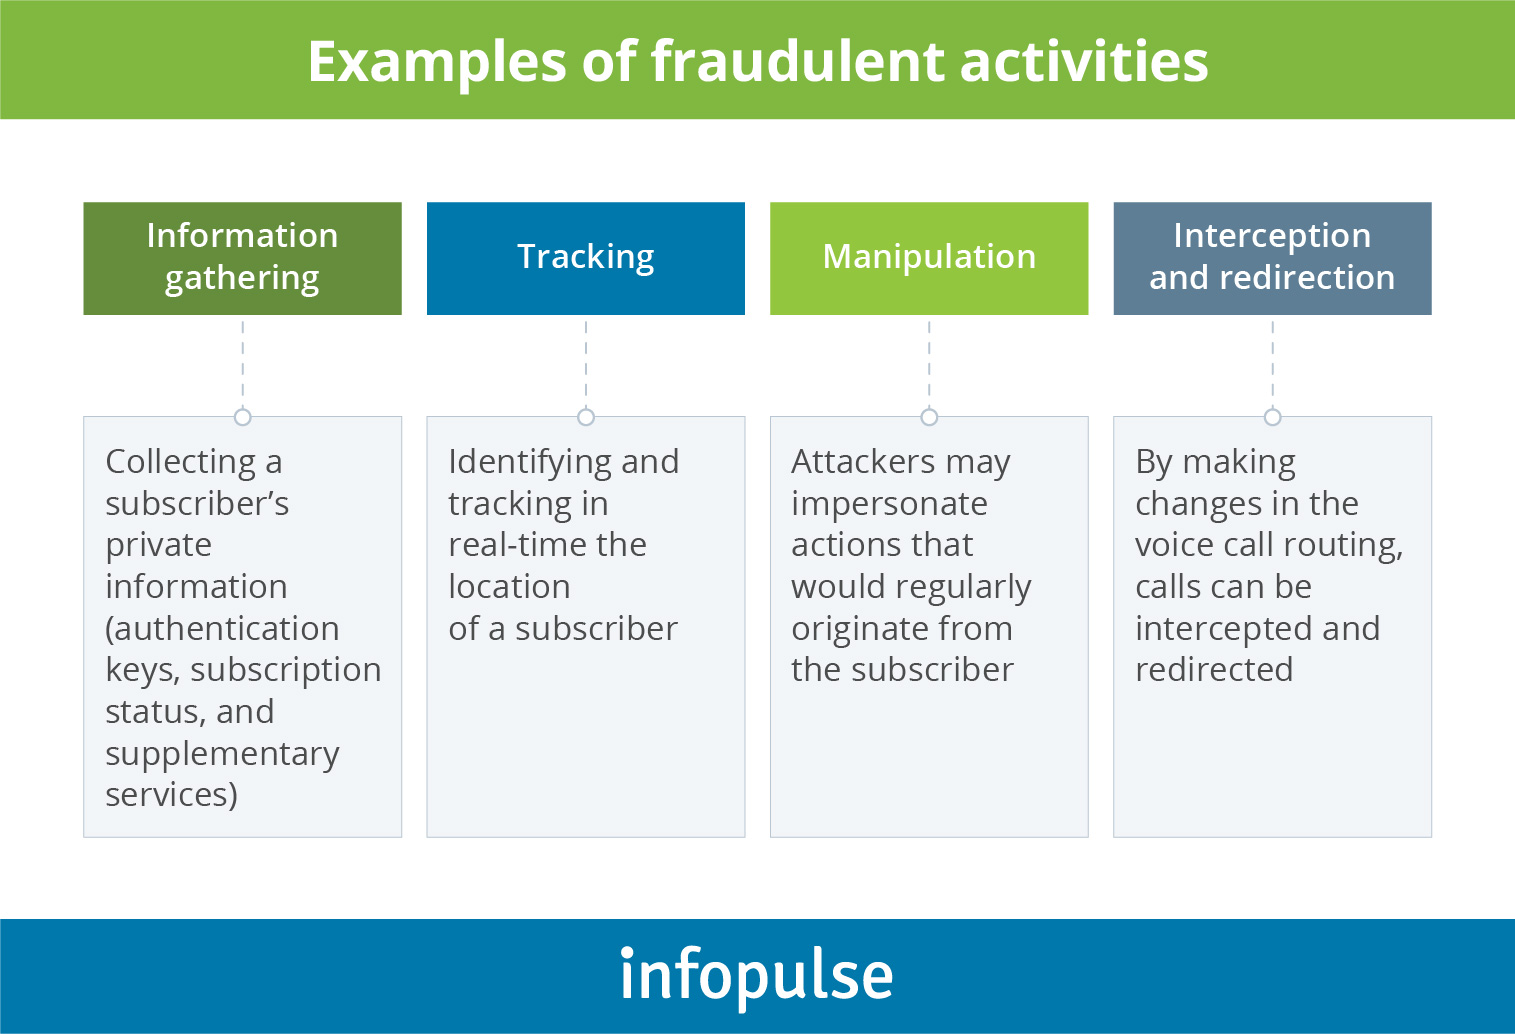 Examples of fraudulent activitiess - Infopulse - 4